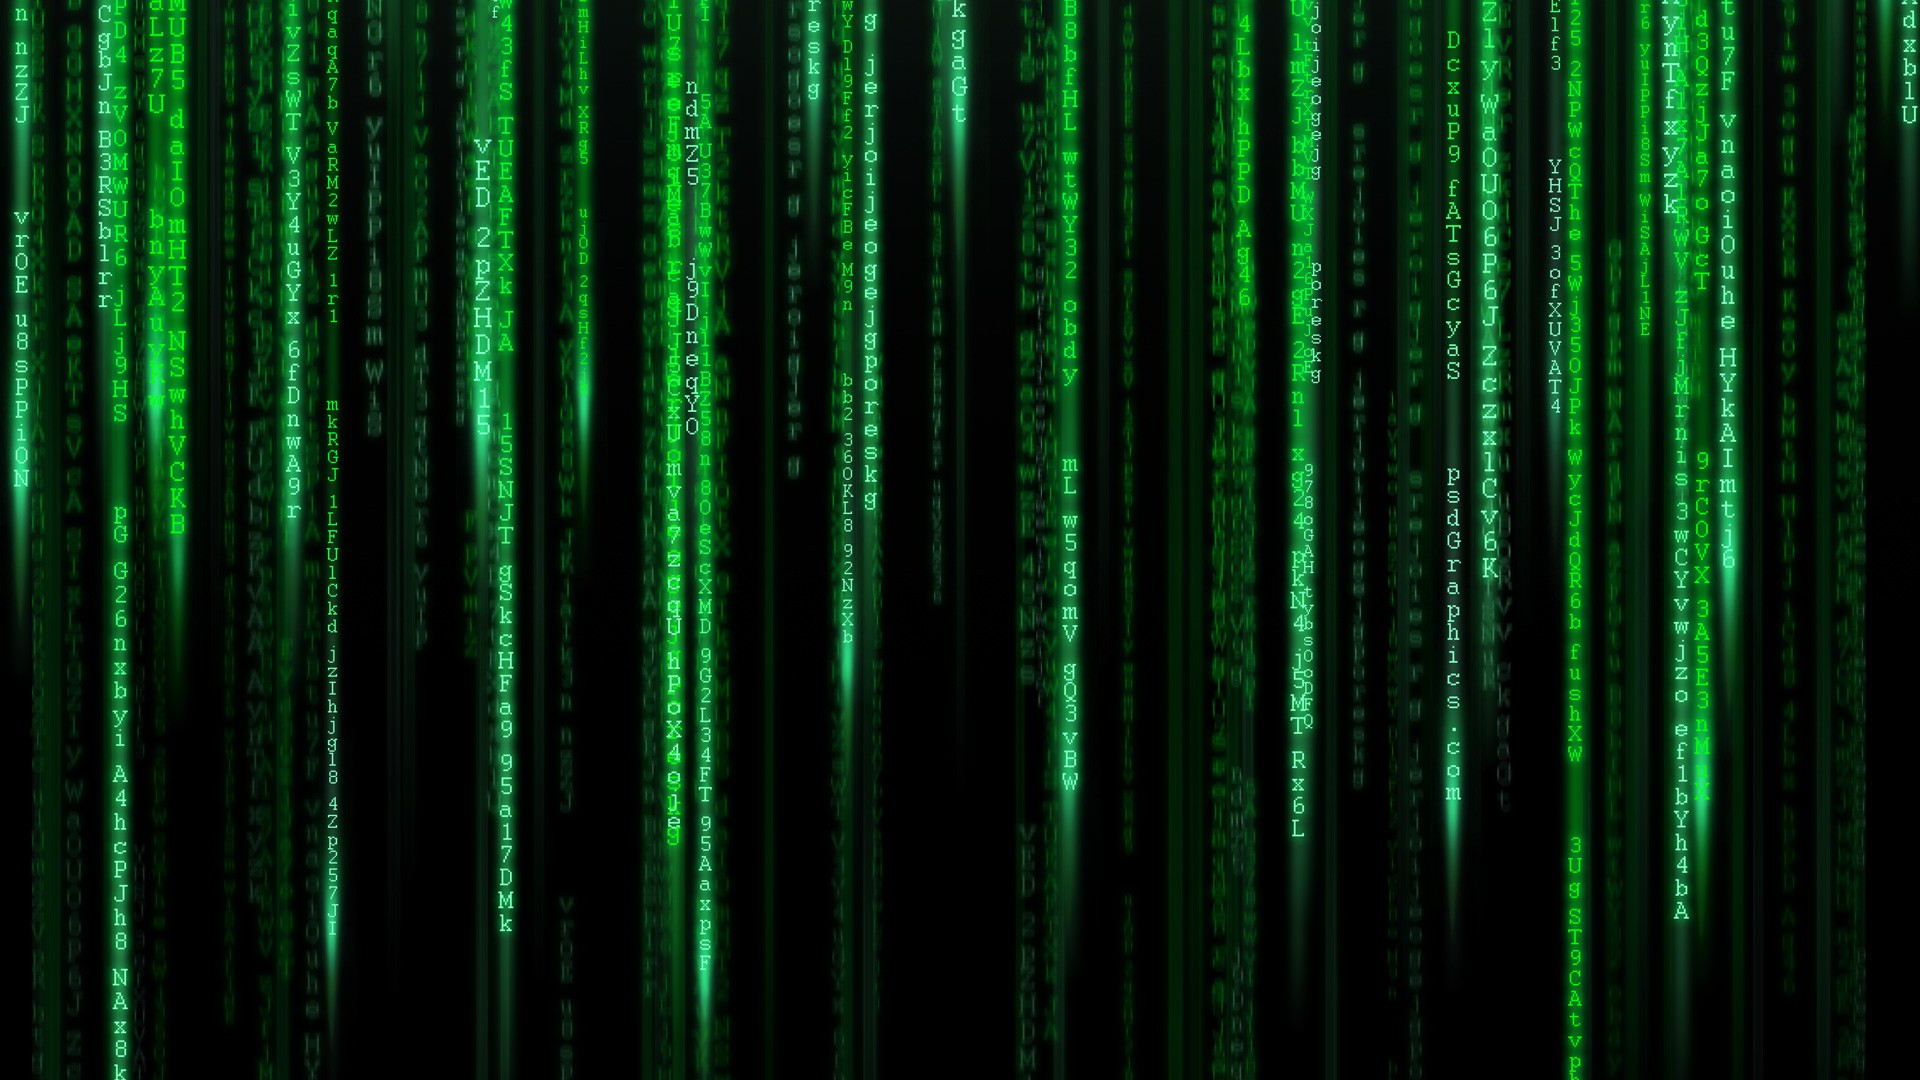 Matrix 1920X1080 wallpaper 129116 1920x1080